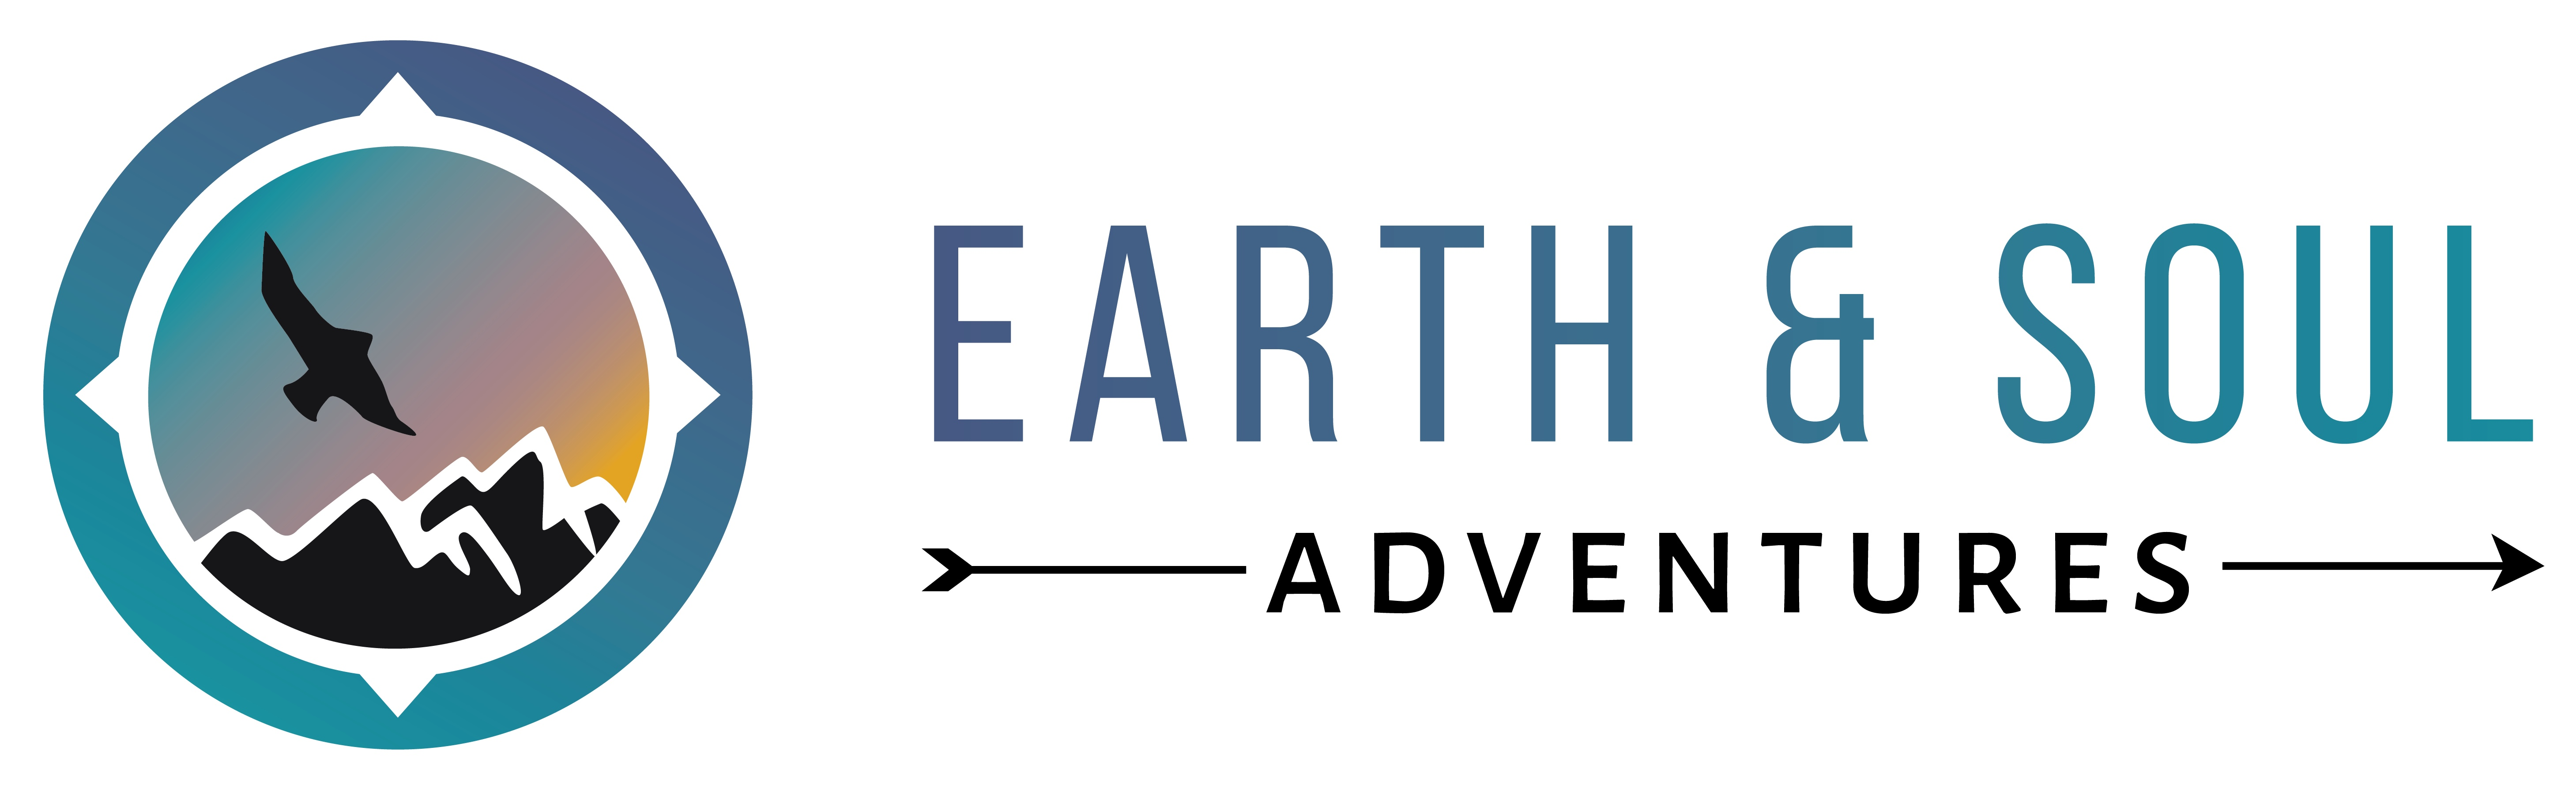 Earth & Soul Adventures